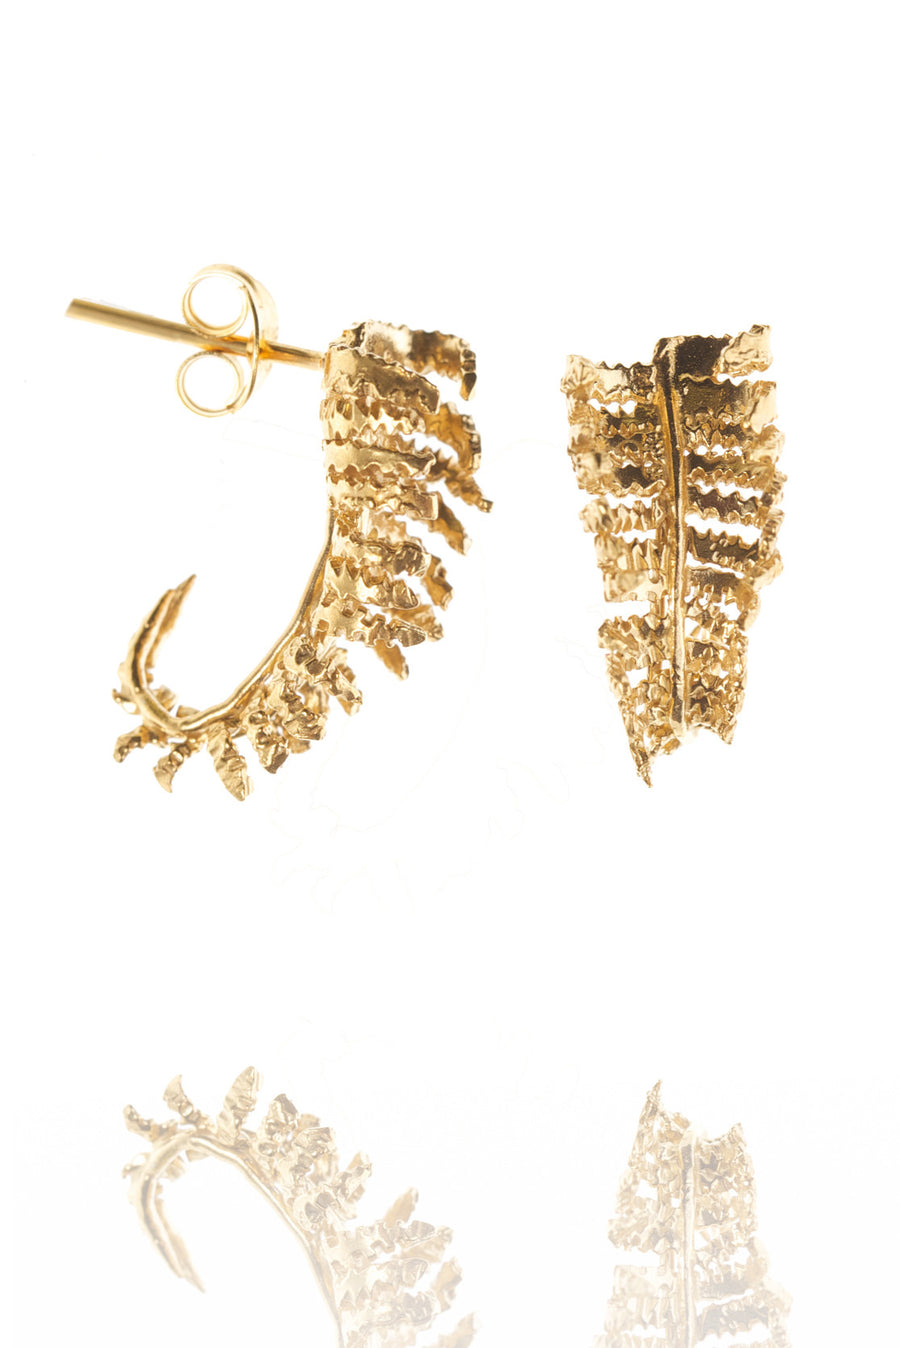 Unfurling Fern Earrings